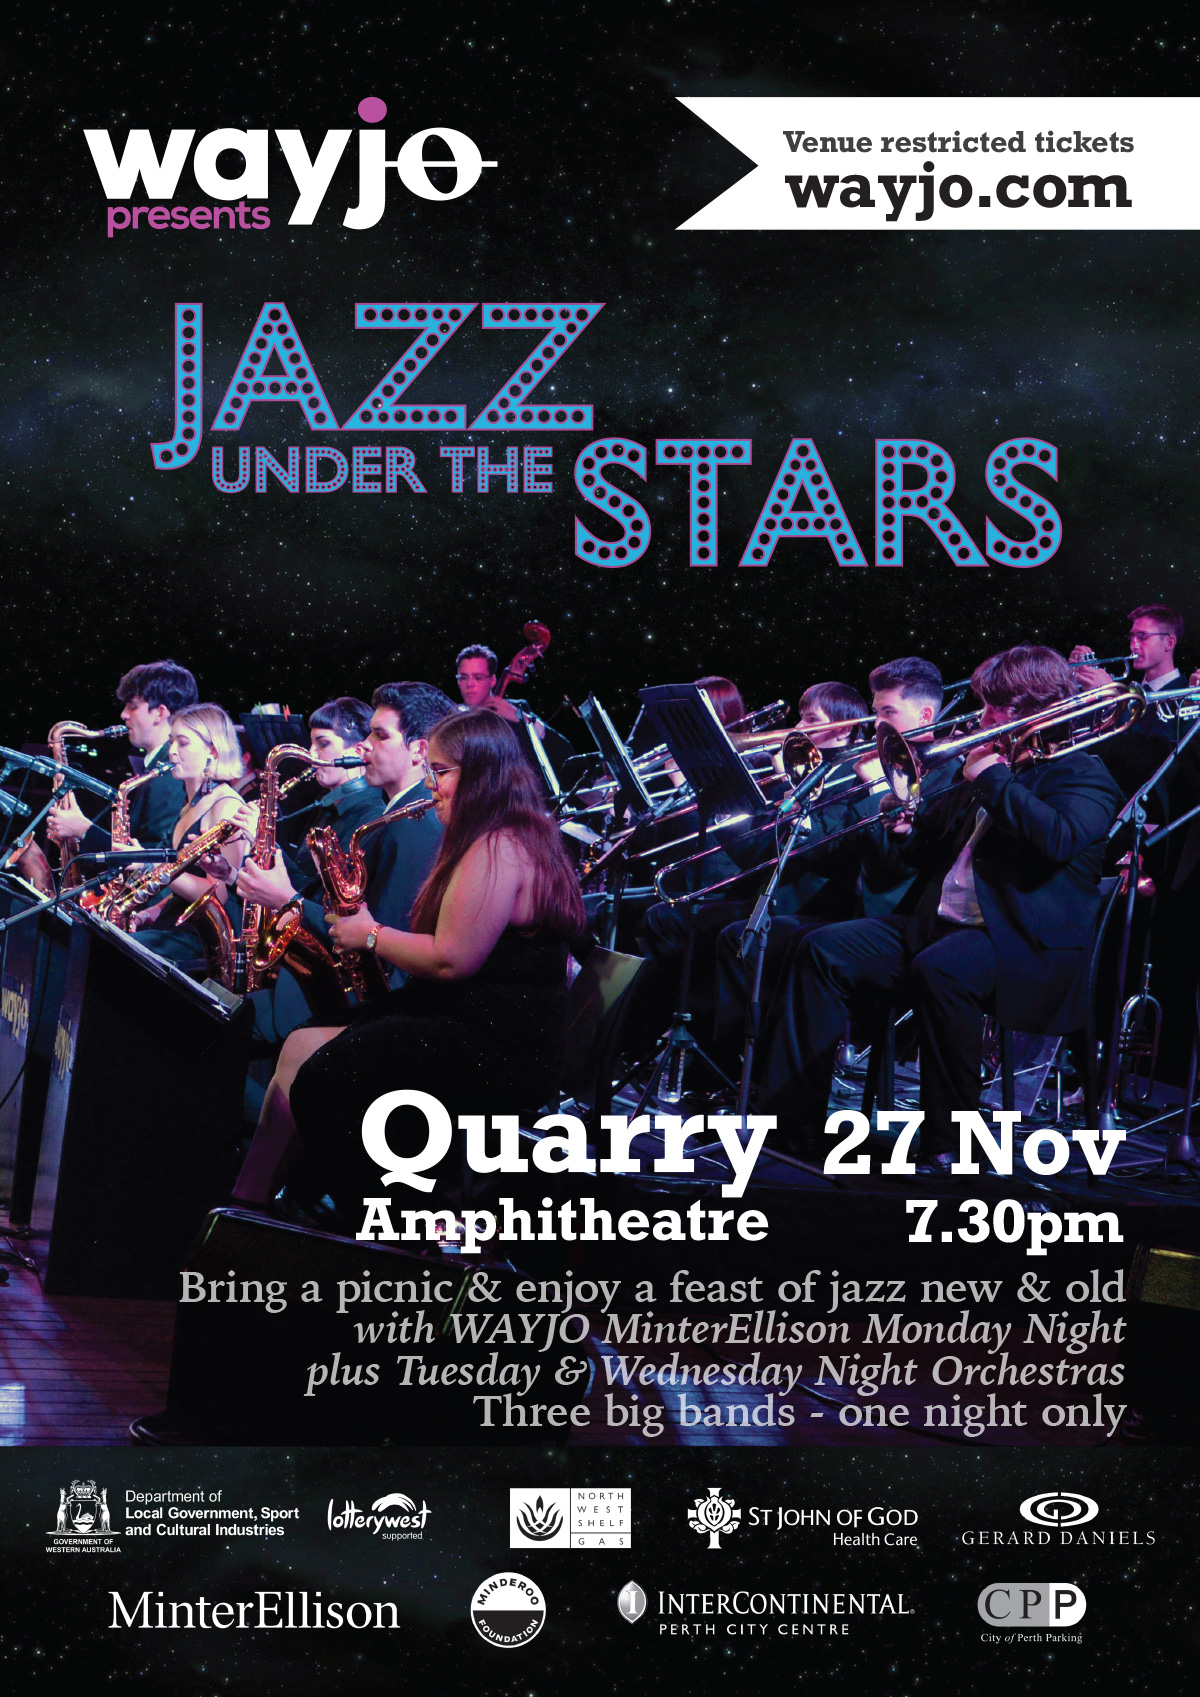 WAYJO presents Jazz Under the Stars 2020 - Fri 27 Nov, 2020